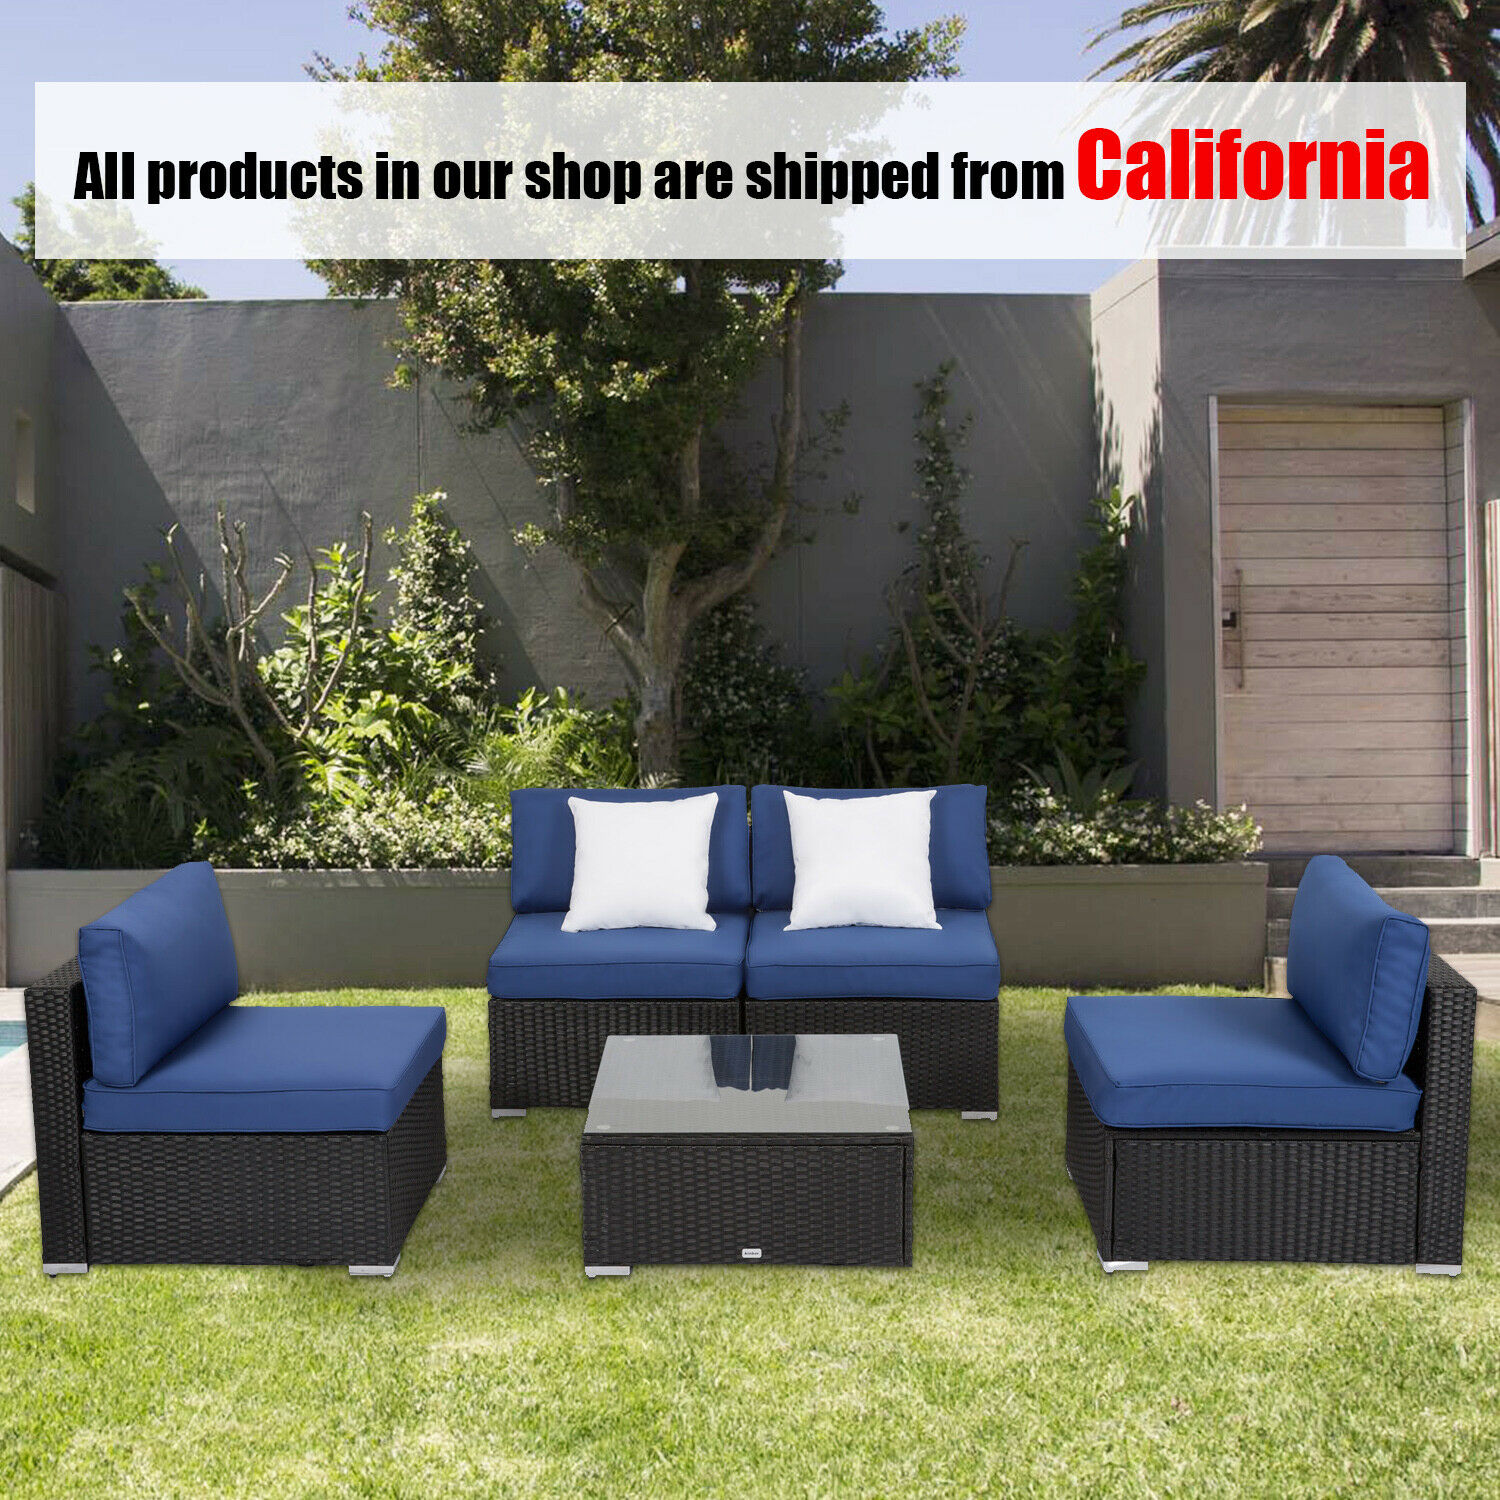 Garden Furniture - 5 Pcs Patio Rattan Sofa Set Wicker Garden Furniture Outdoor Sectional Couch